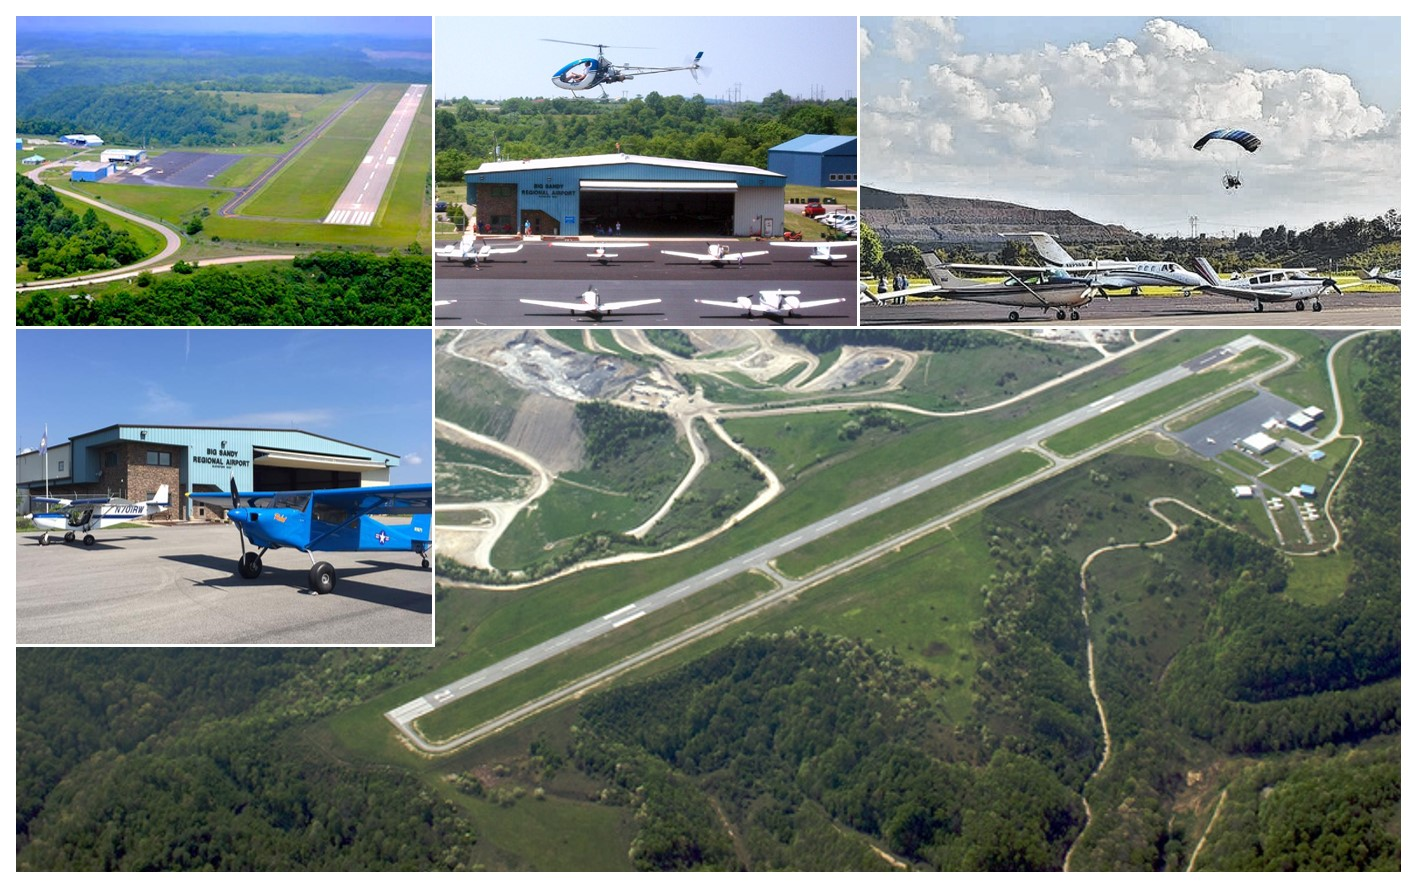 Main Photo For Big Sandy Regional Airport